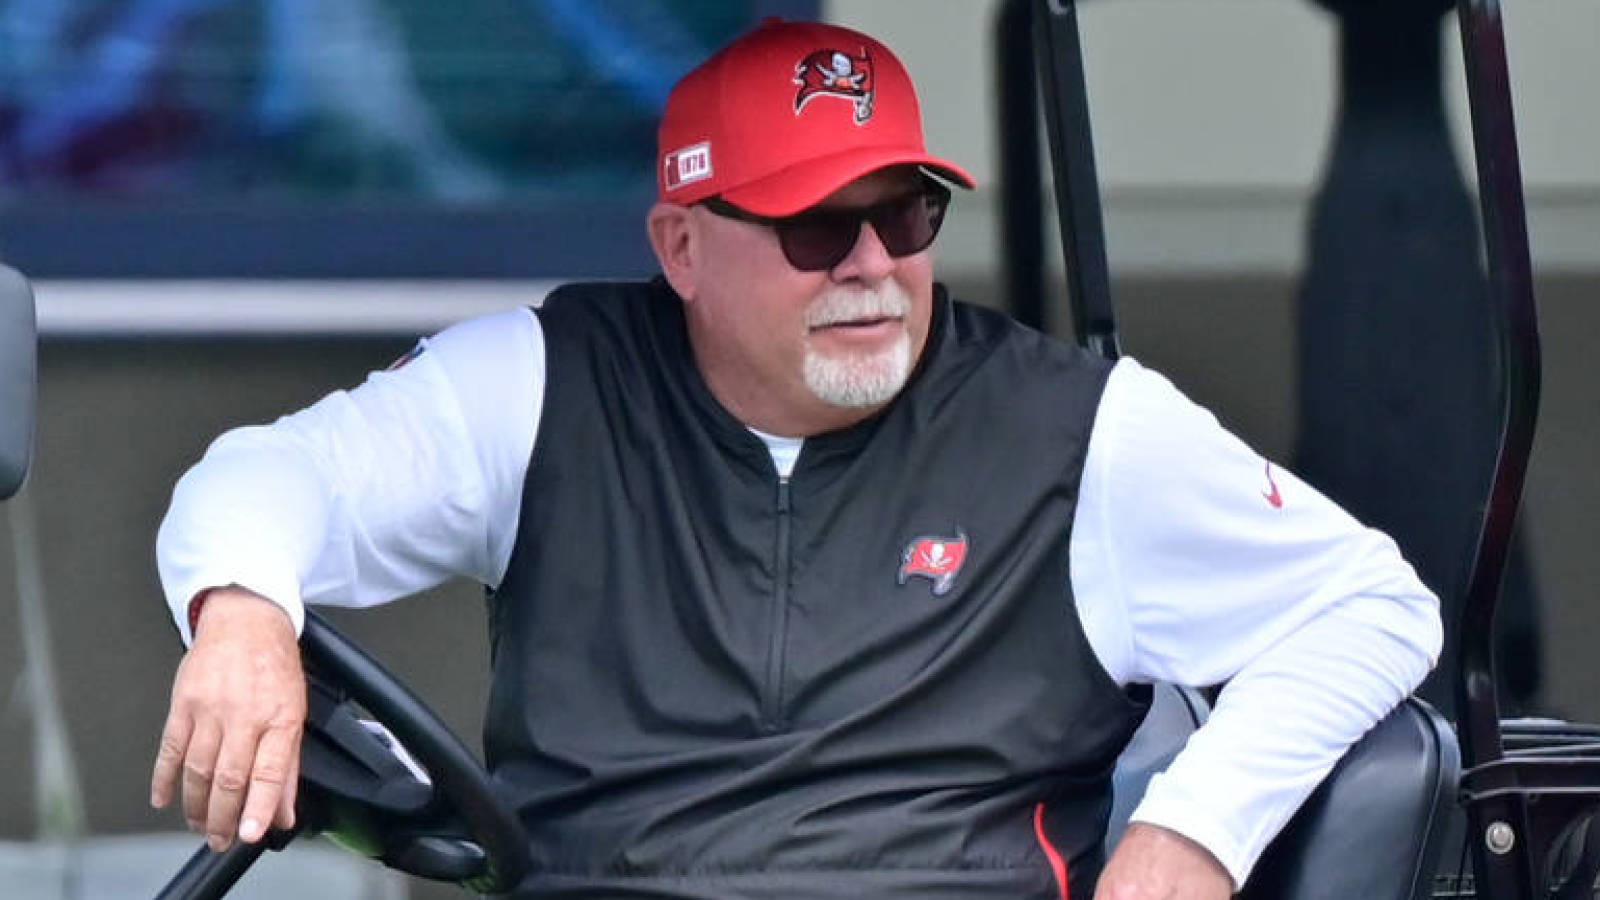 Buccaneers coach Bruce Arians: 'If you want to get back to normal, get vaccinated' against COVID-19